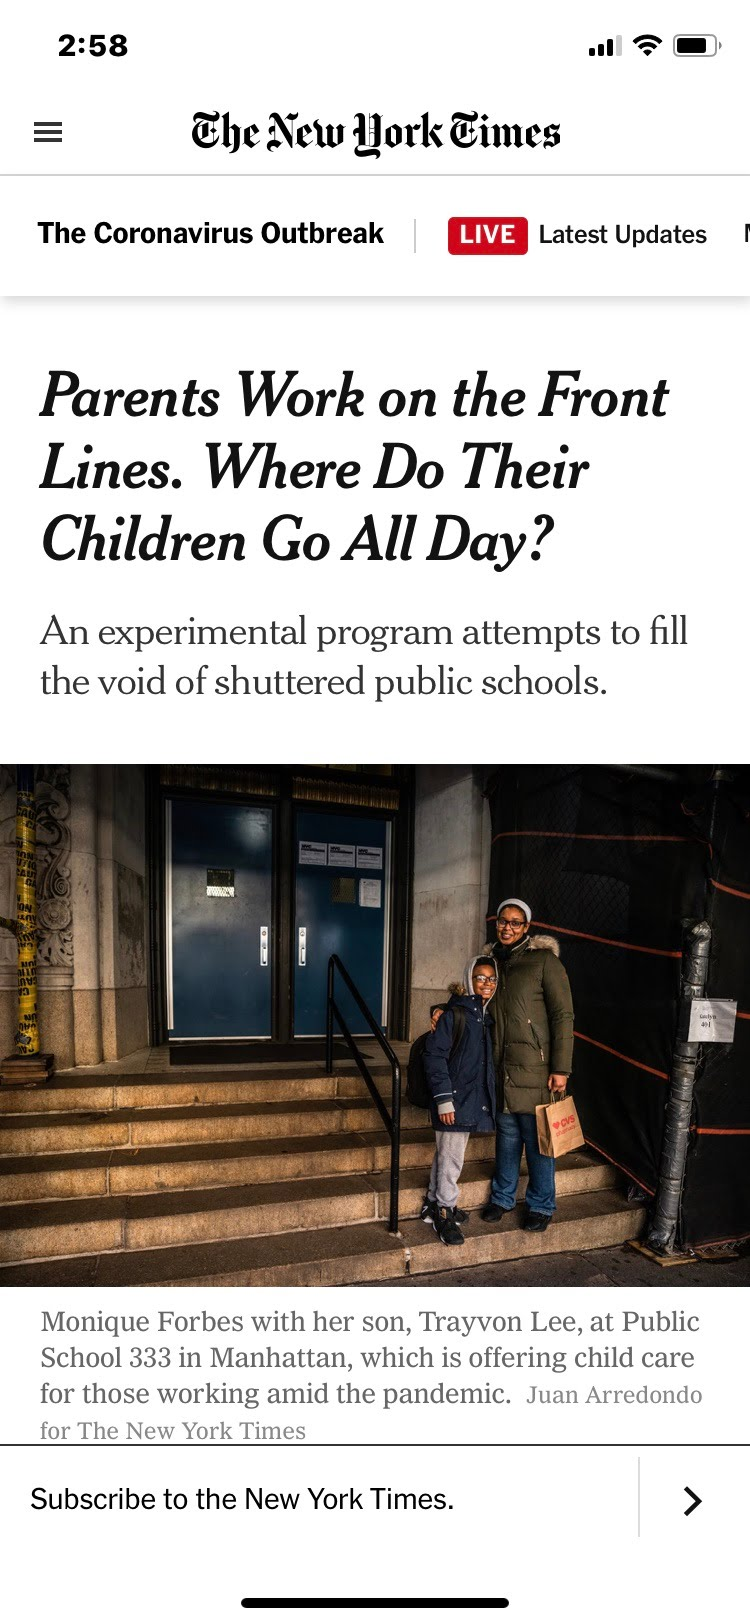 Parents Work on the Front Lines. Where Do Their Children Go All Day?   The New York Times